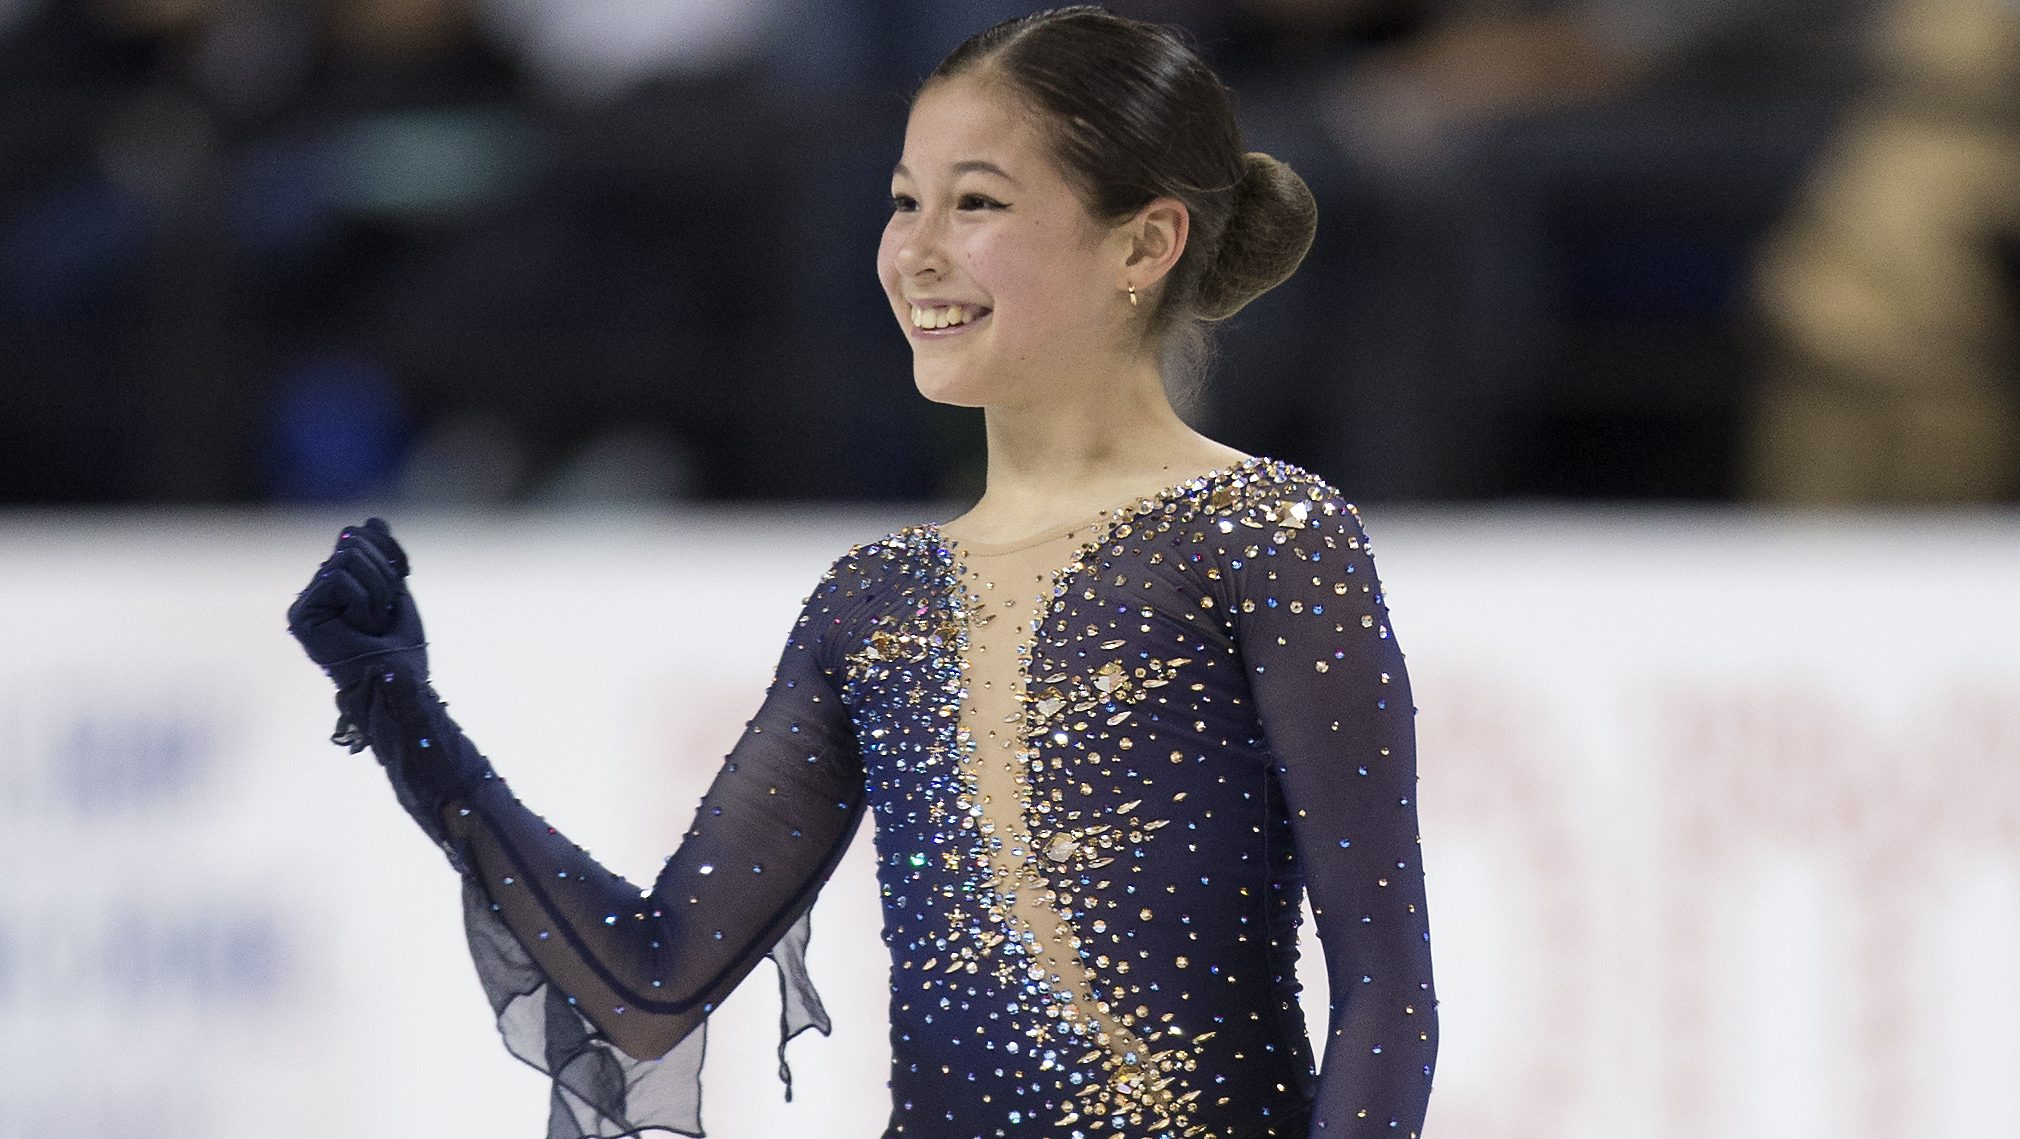 Alysa Liu unflappable under intense pressure to successfully defend national title